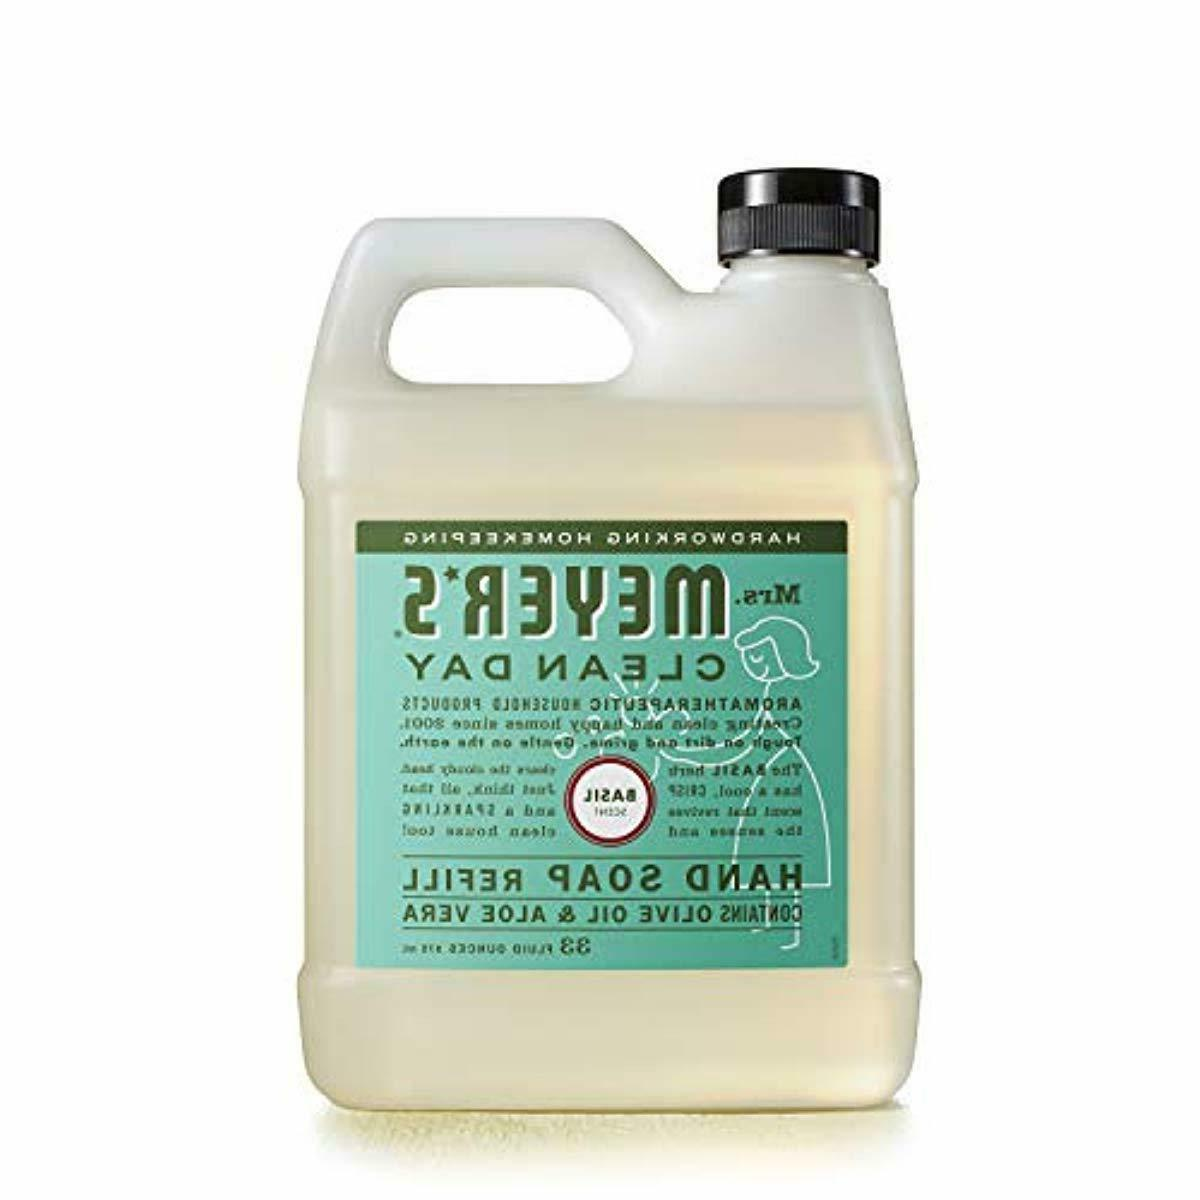 Mrs. - Liquid Hand Soap Refill, Basil - 33